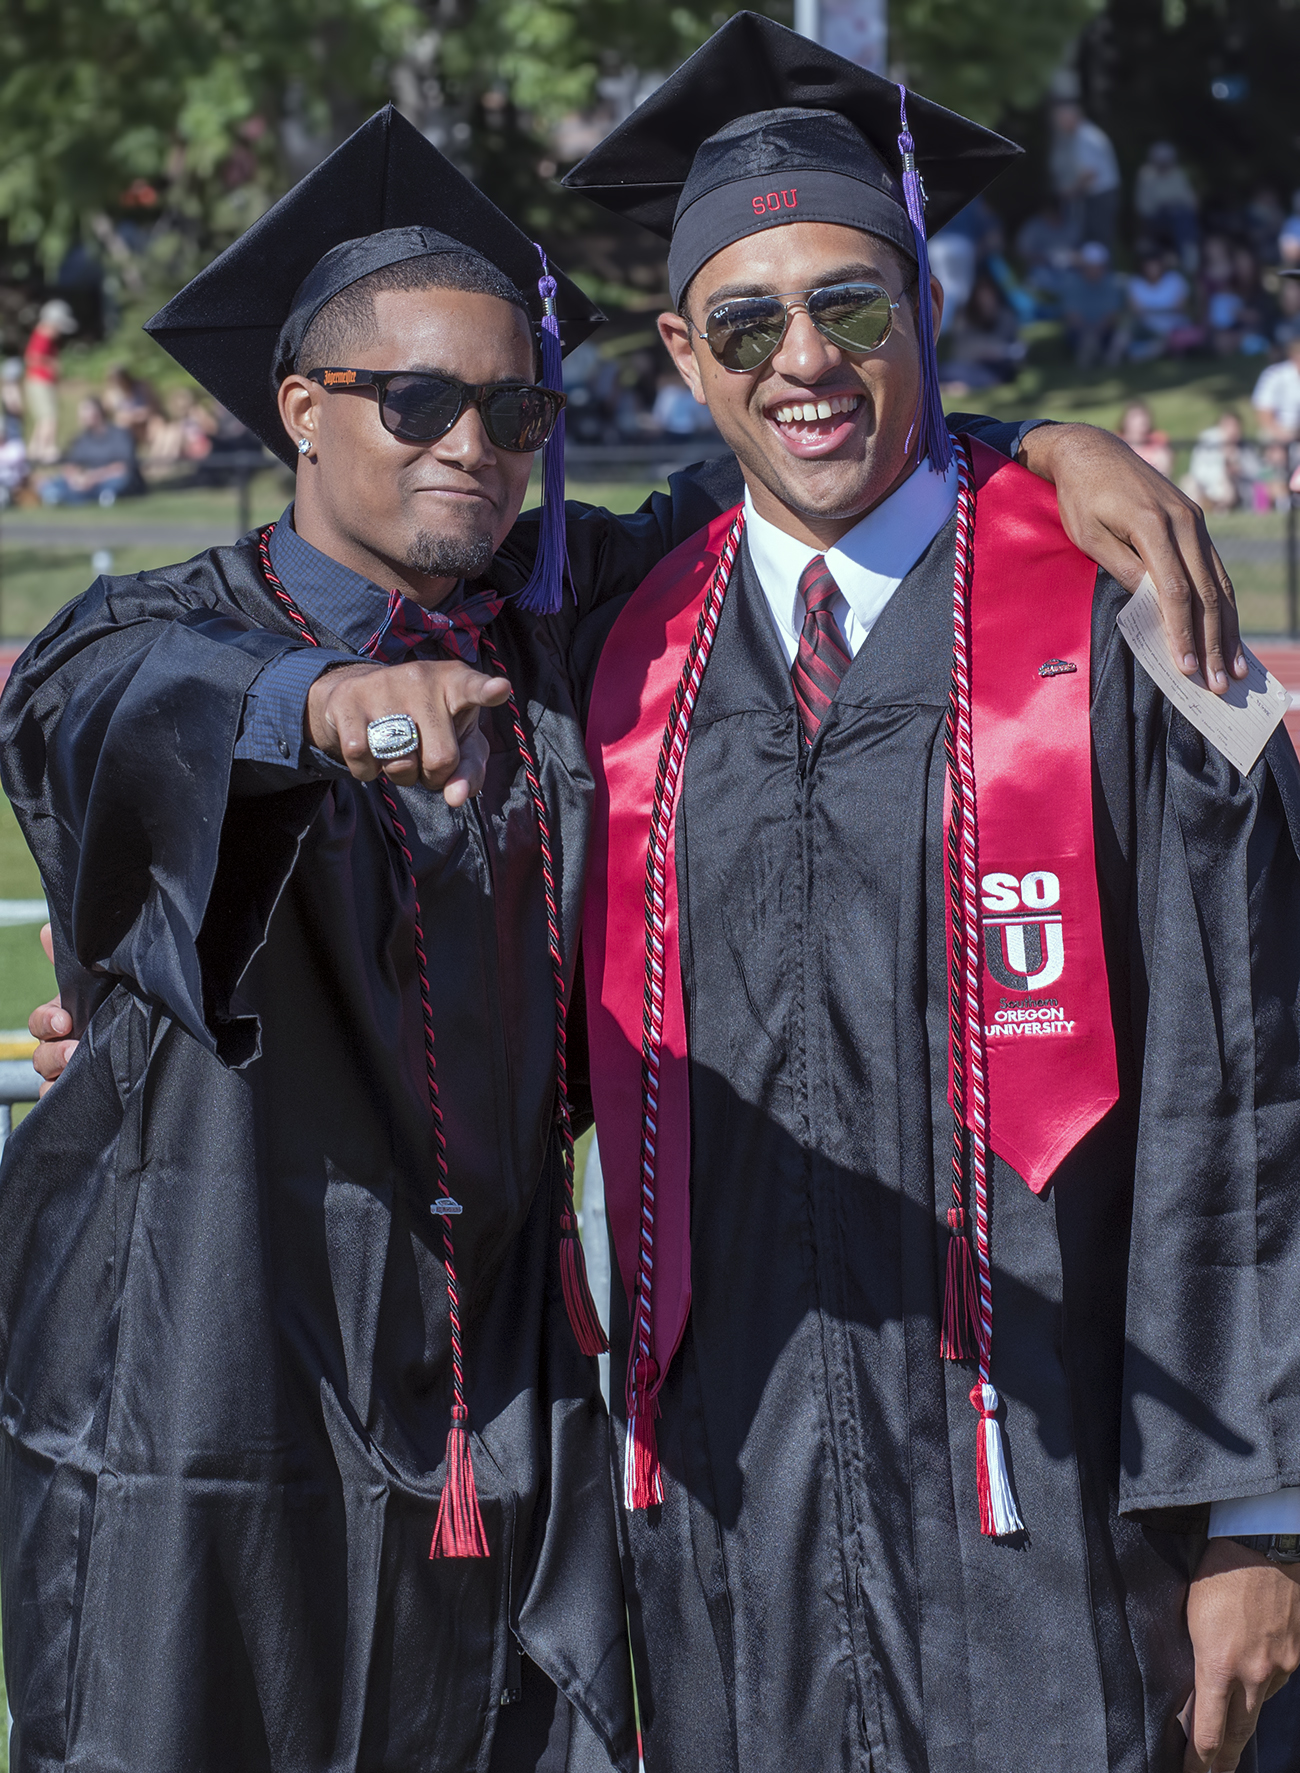 National champions crime fighters and 2015 sou graduates blakelyn